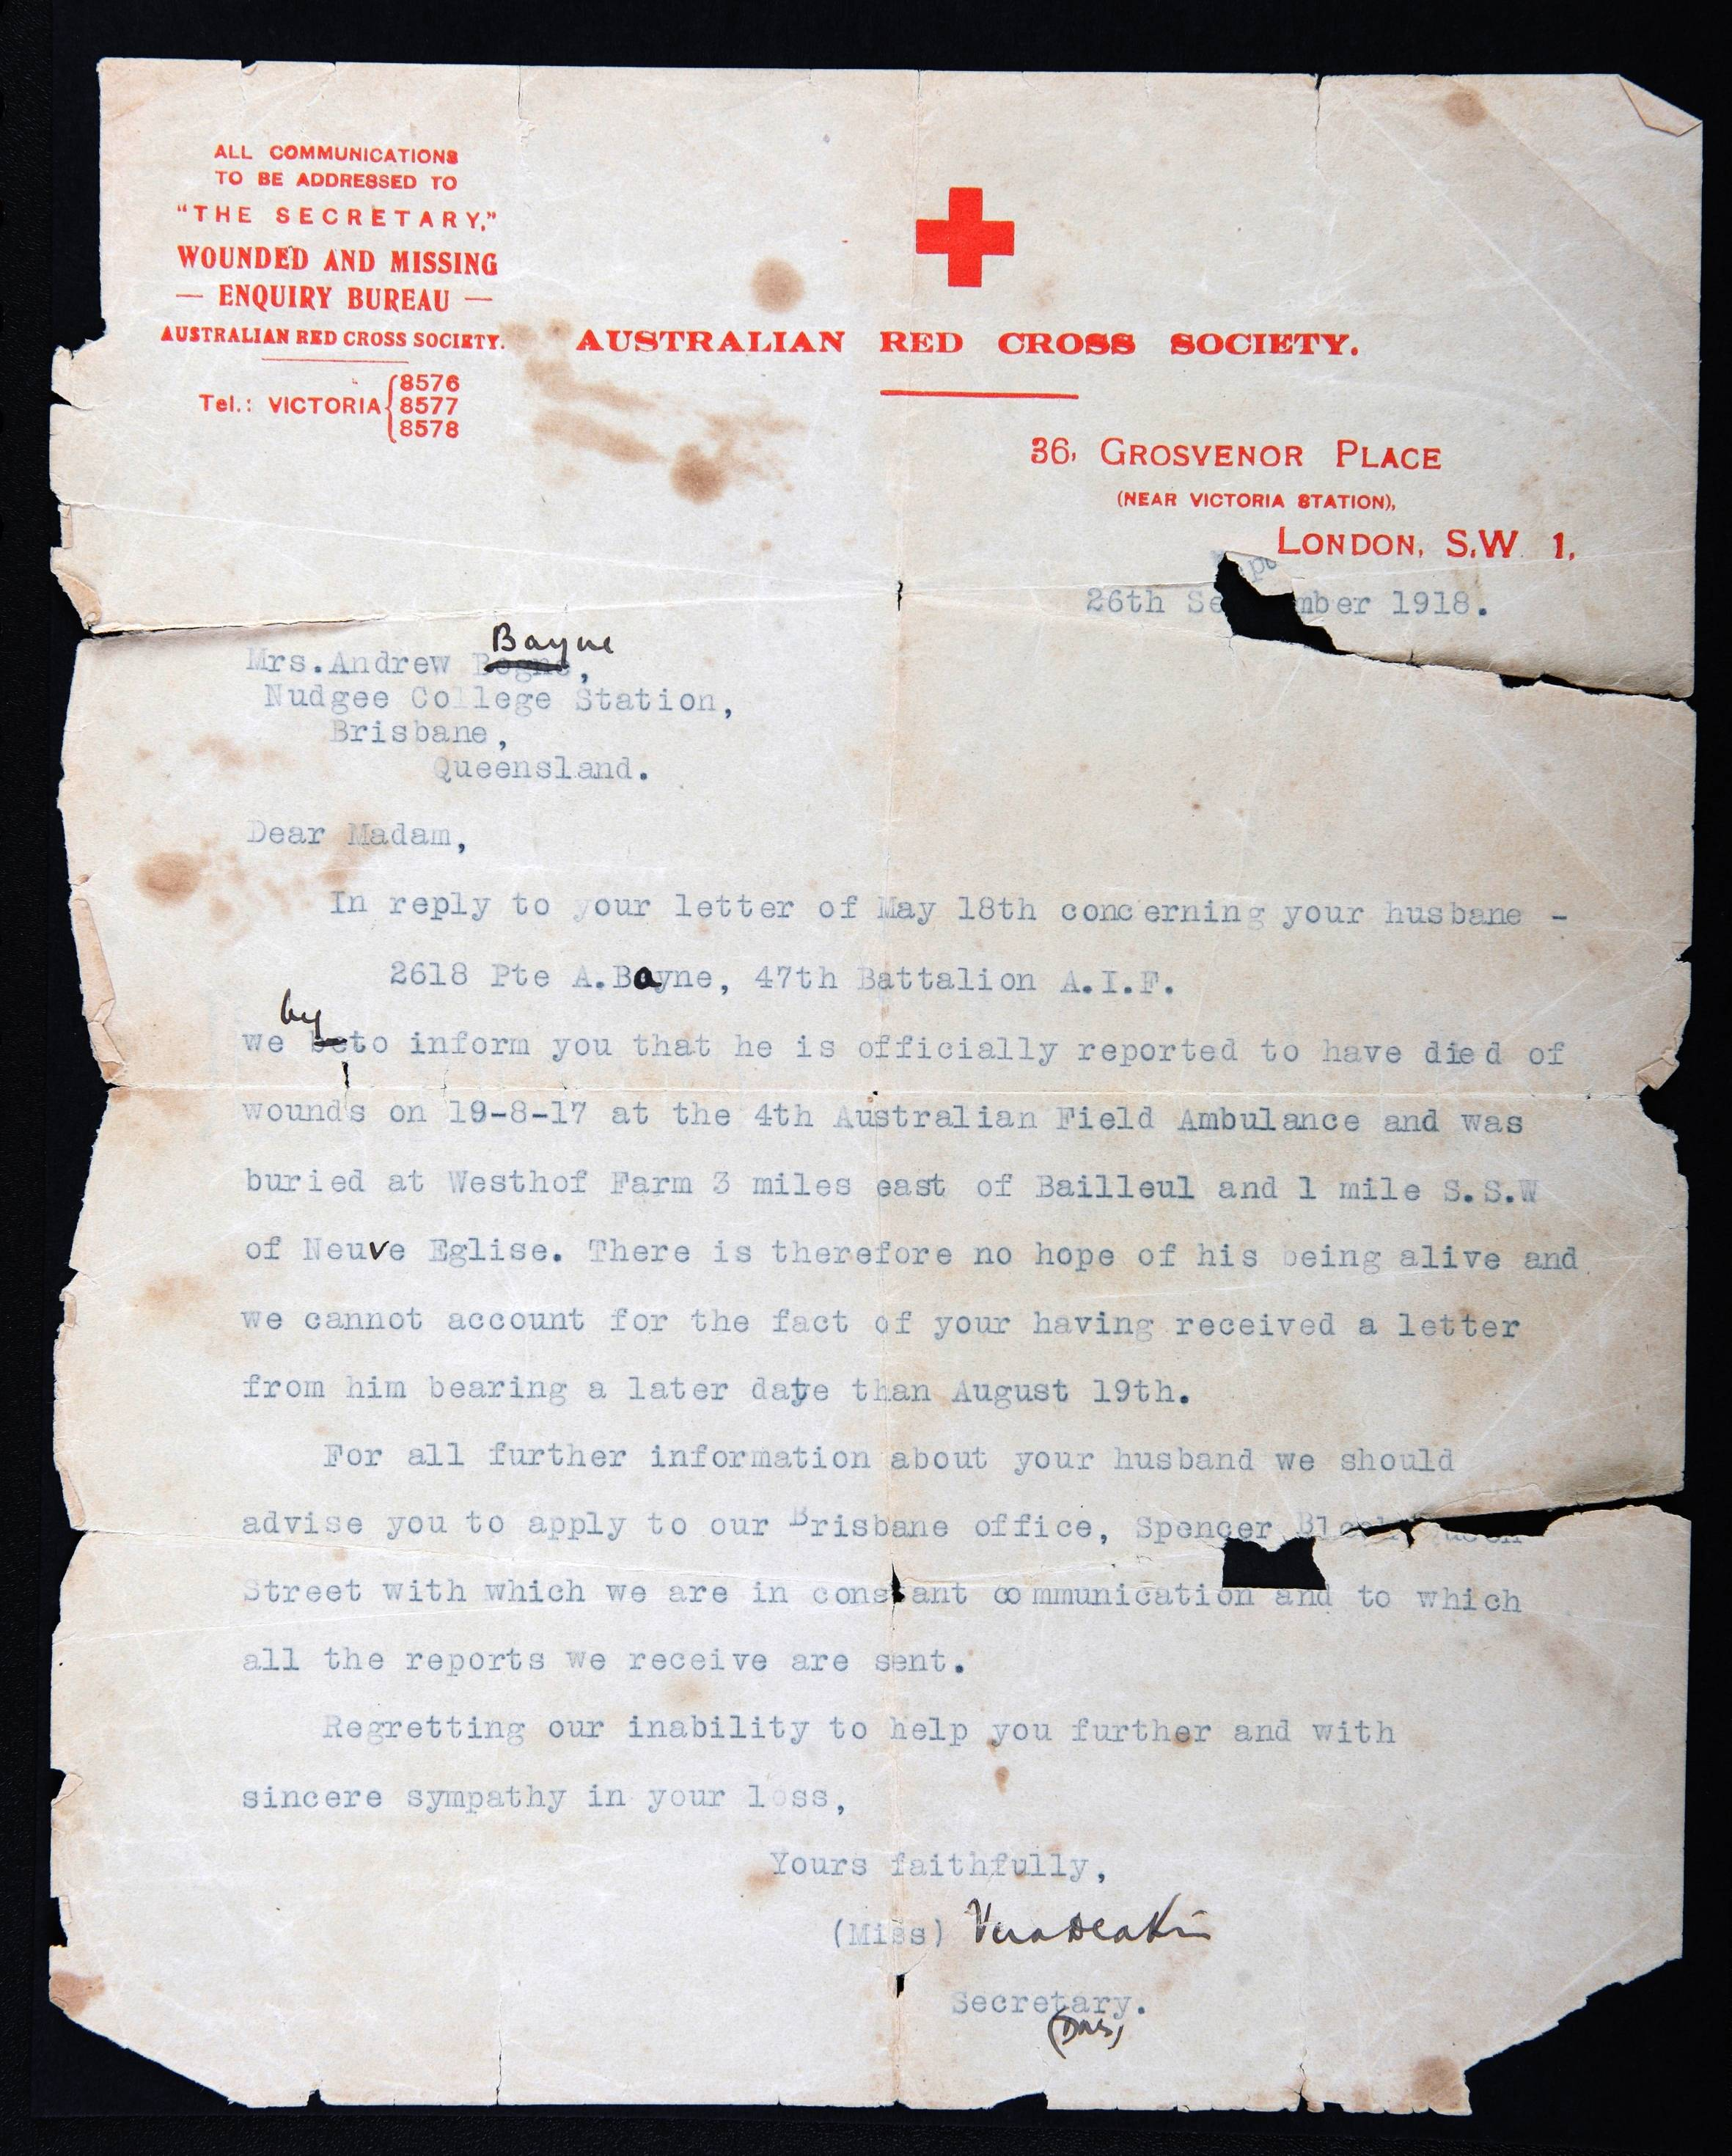 In this photo of a Sept. 26, 1918 letter from the Australian Red Cross, provided by the family, some clarity is made regarding World War I Australian soldier Andrew Bayne. Andrew Bayne's journey took him to the battlefields of Bullecourt, Wytschaete, and Ypres before he was killed in action near Messines Ridge, Belgium on Aug. 19, 1917. Bayne's wife, who received a letter from him after his death, questioned whether her husband had actually been killed. In the years that followed she continued to believe that he was still alive and that he would eventually return home.